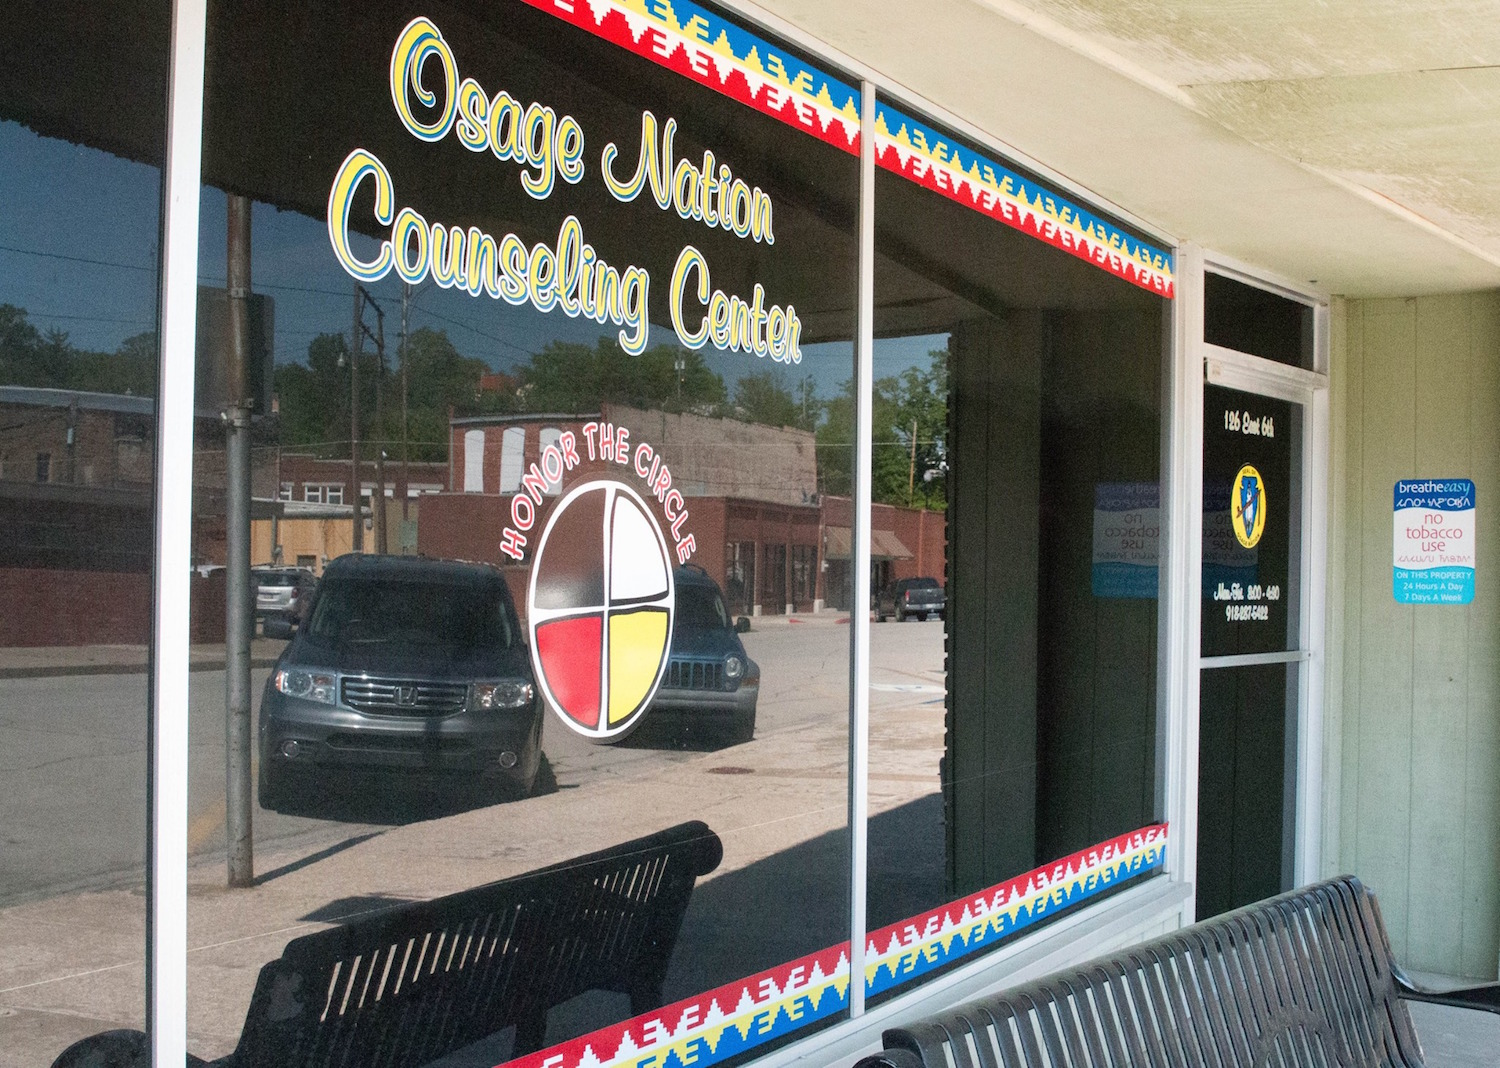 Osage Nation adopts banishment for dangerous drug offenders